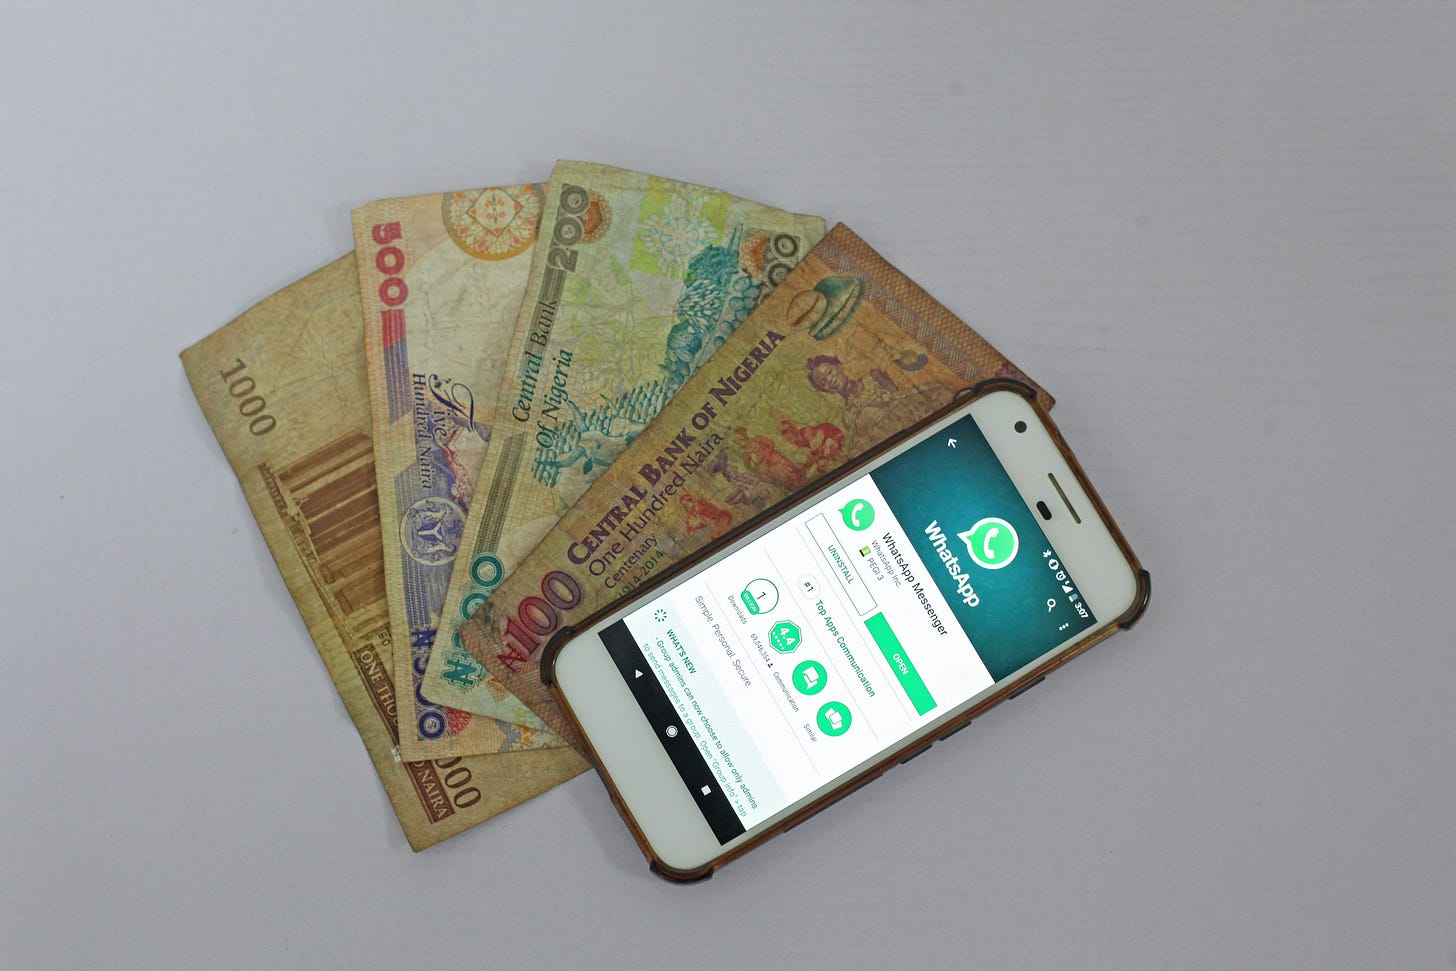 Photo of a phone with WhatsApp open laid on top of currency fanned out underneath it. Benjamin Dada / Unsplash